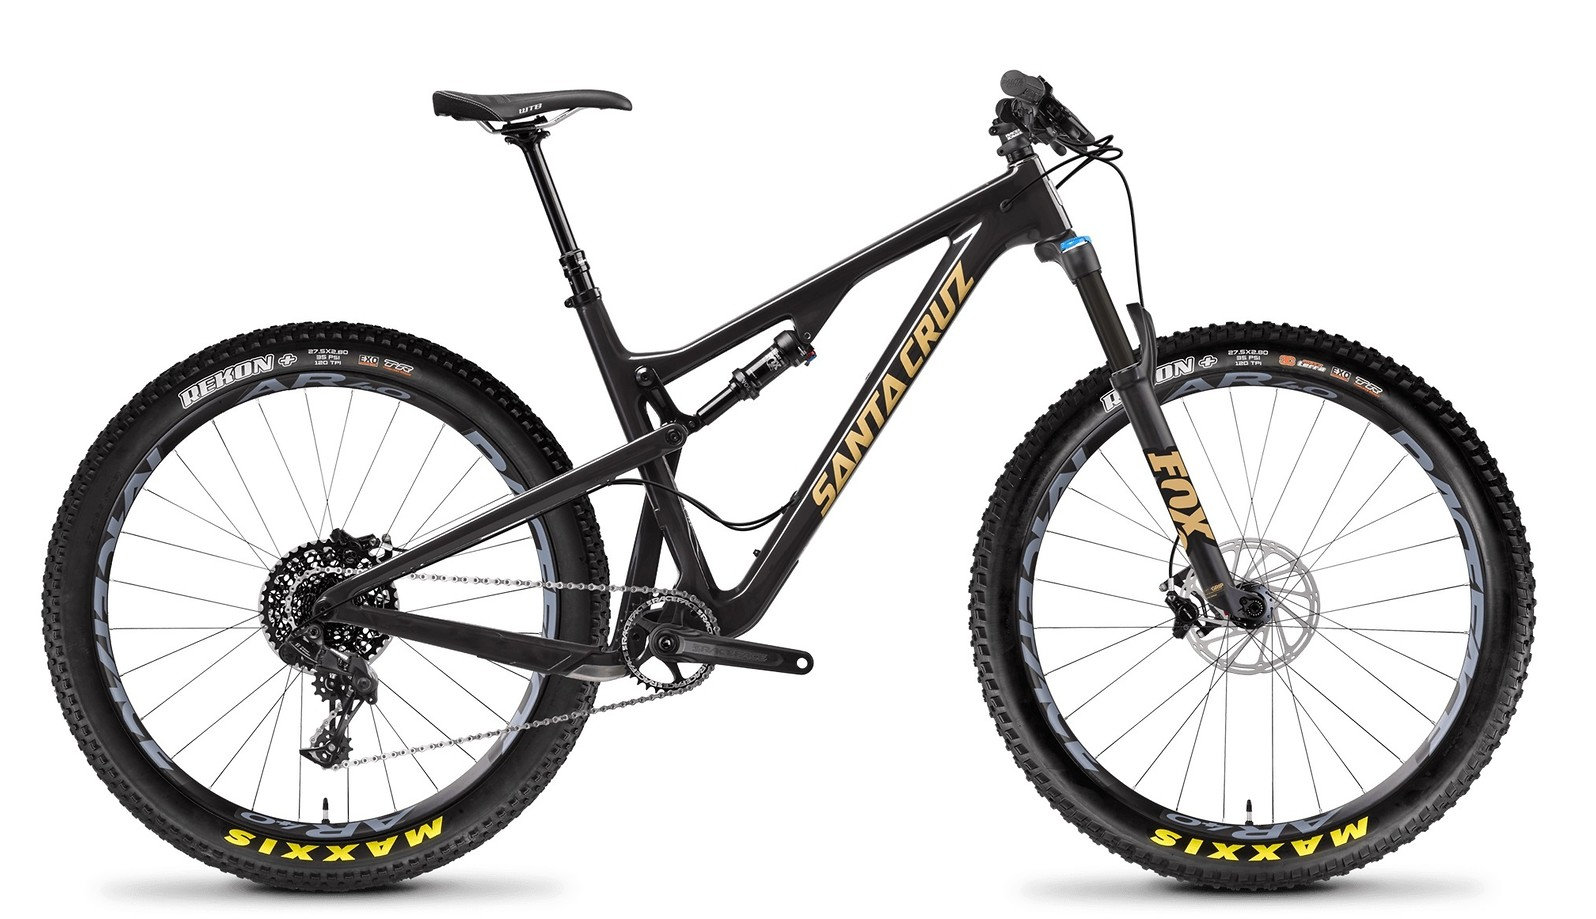 Tallboy Carbon C PLUS Gloss Carbon and Tan